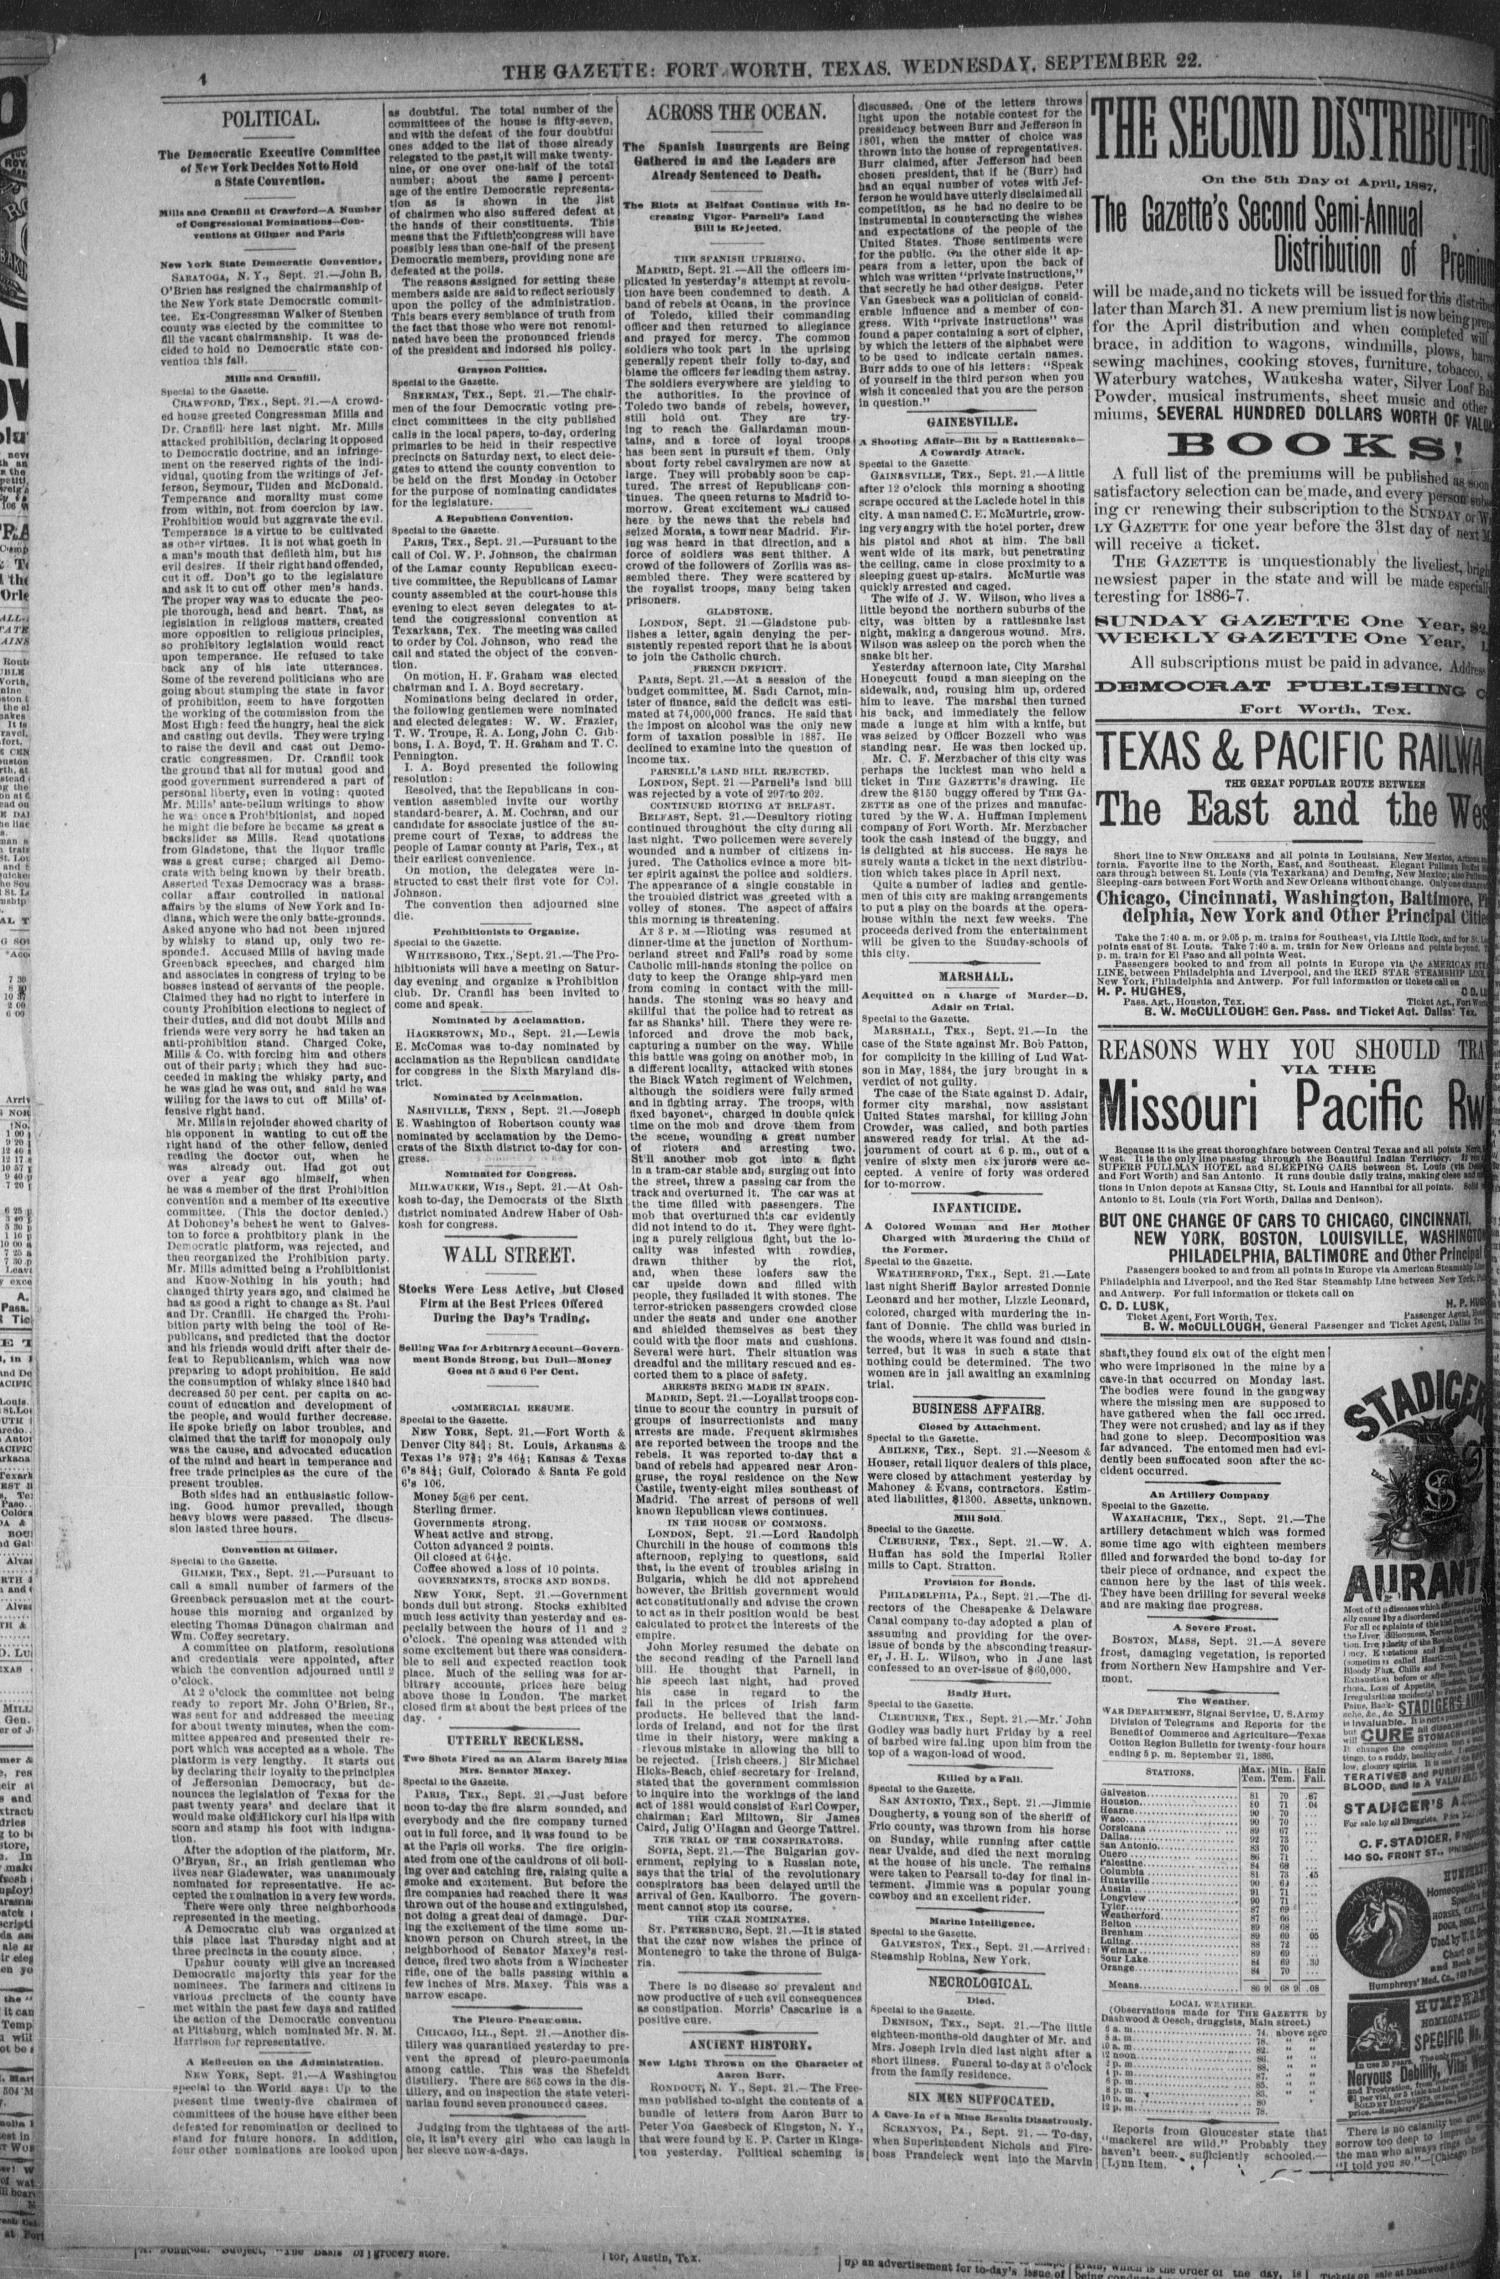 Fort Worth Daily Gazette. (Fort Worth, Tex.), Vol. 12, No. 54, Ed. 1, Wednesday, September 22, 1886                                                                                                      [Sequence #]: 4 of 8